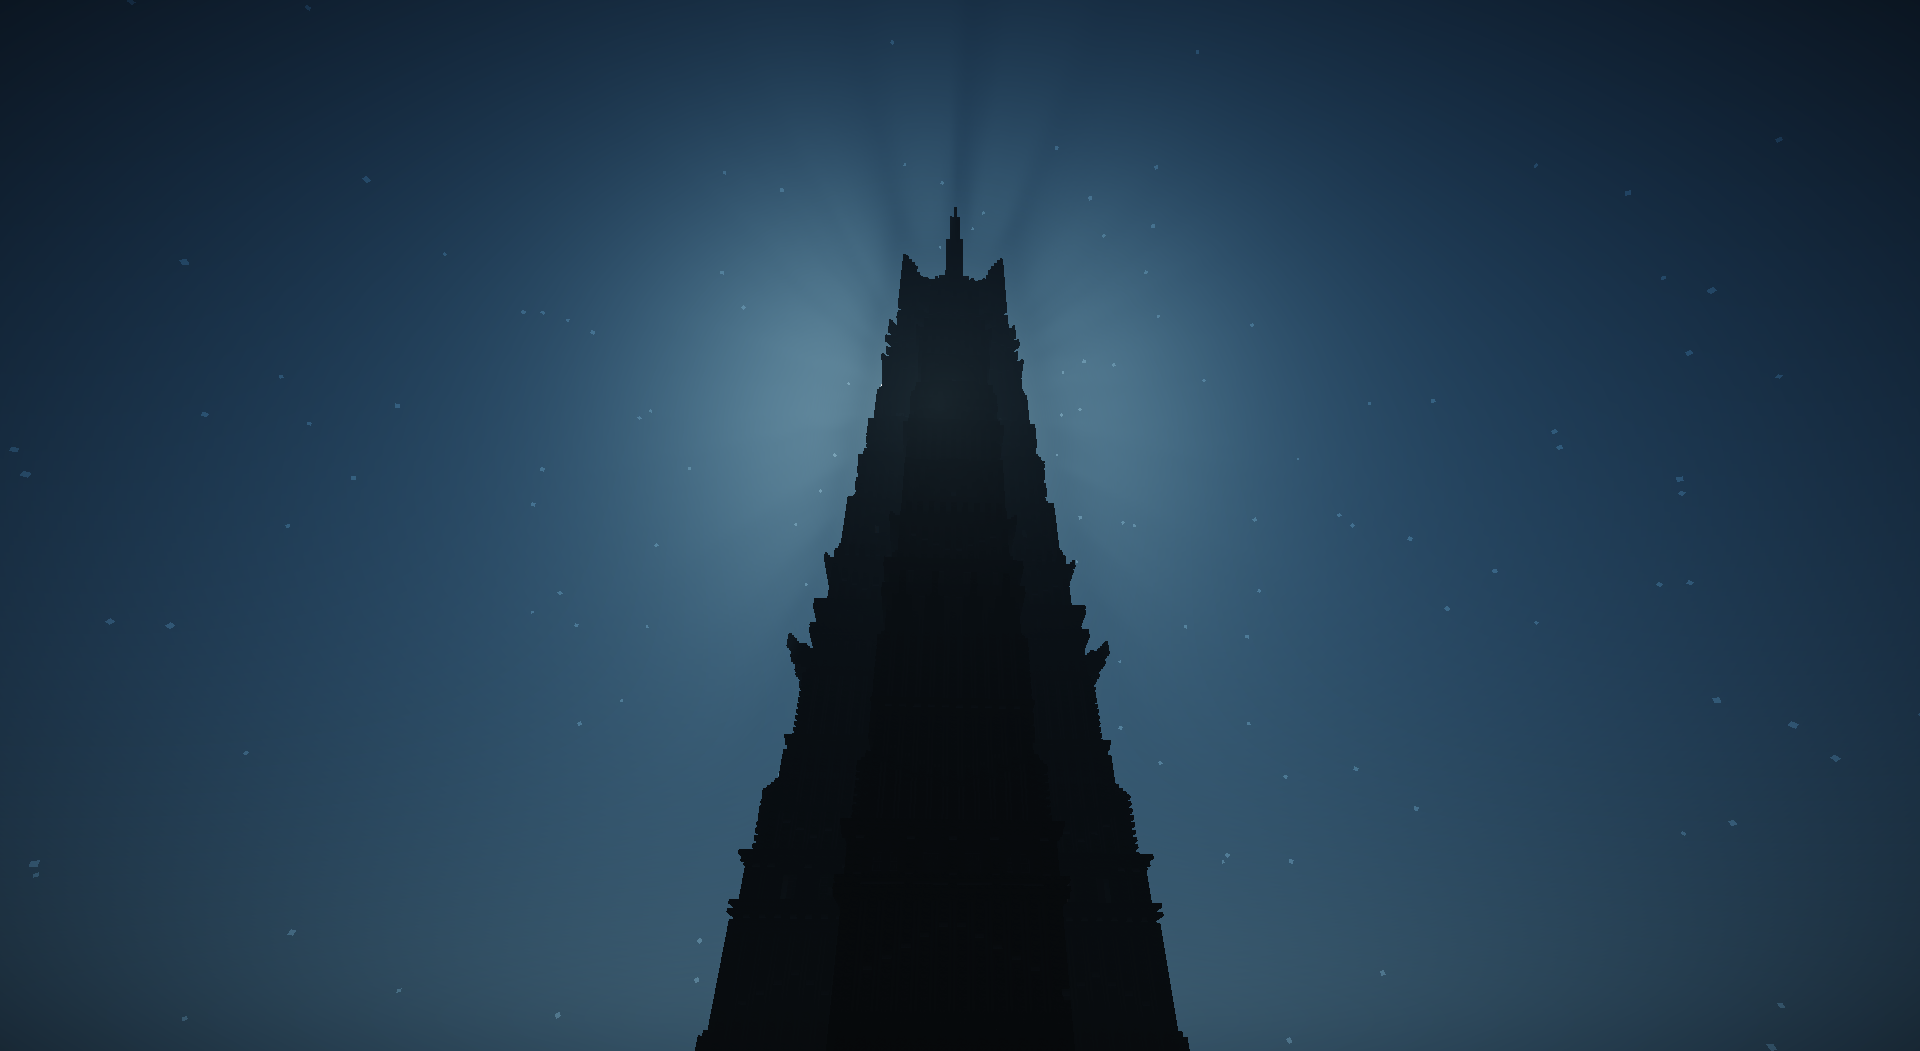 Orthanc, beautiful but sinister looking.png